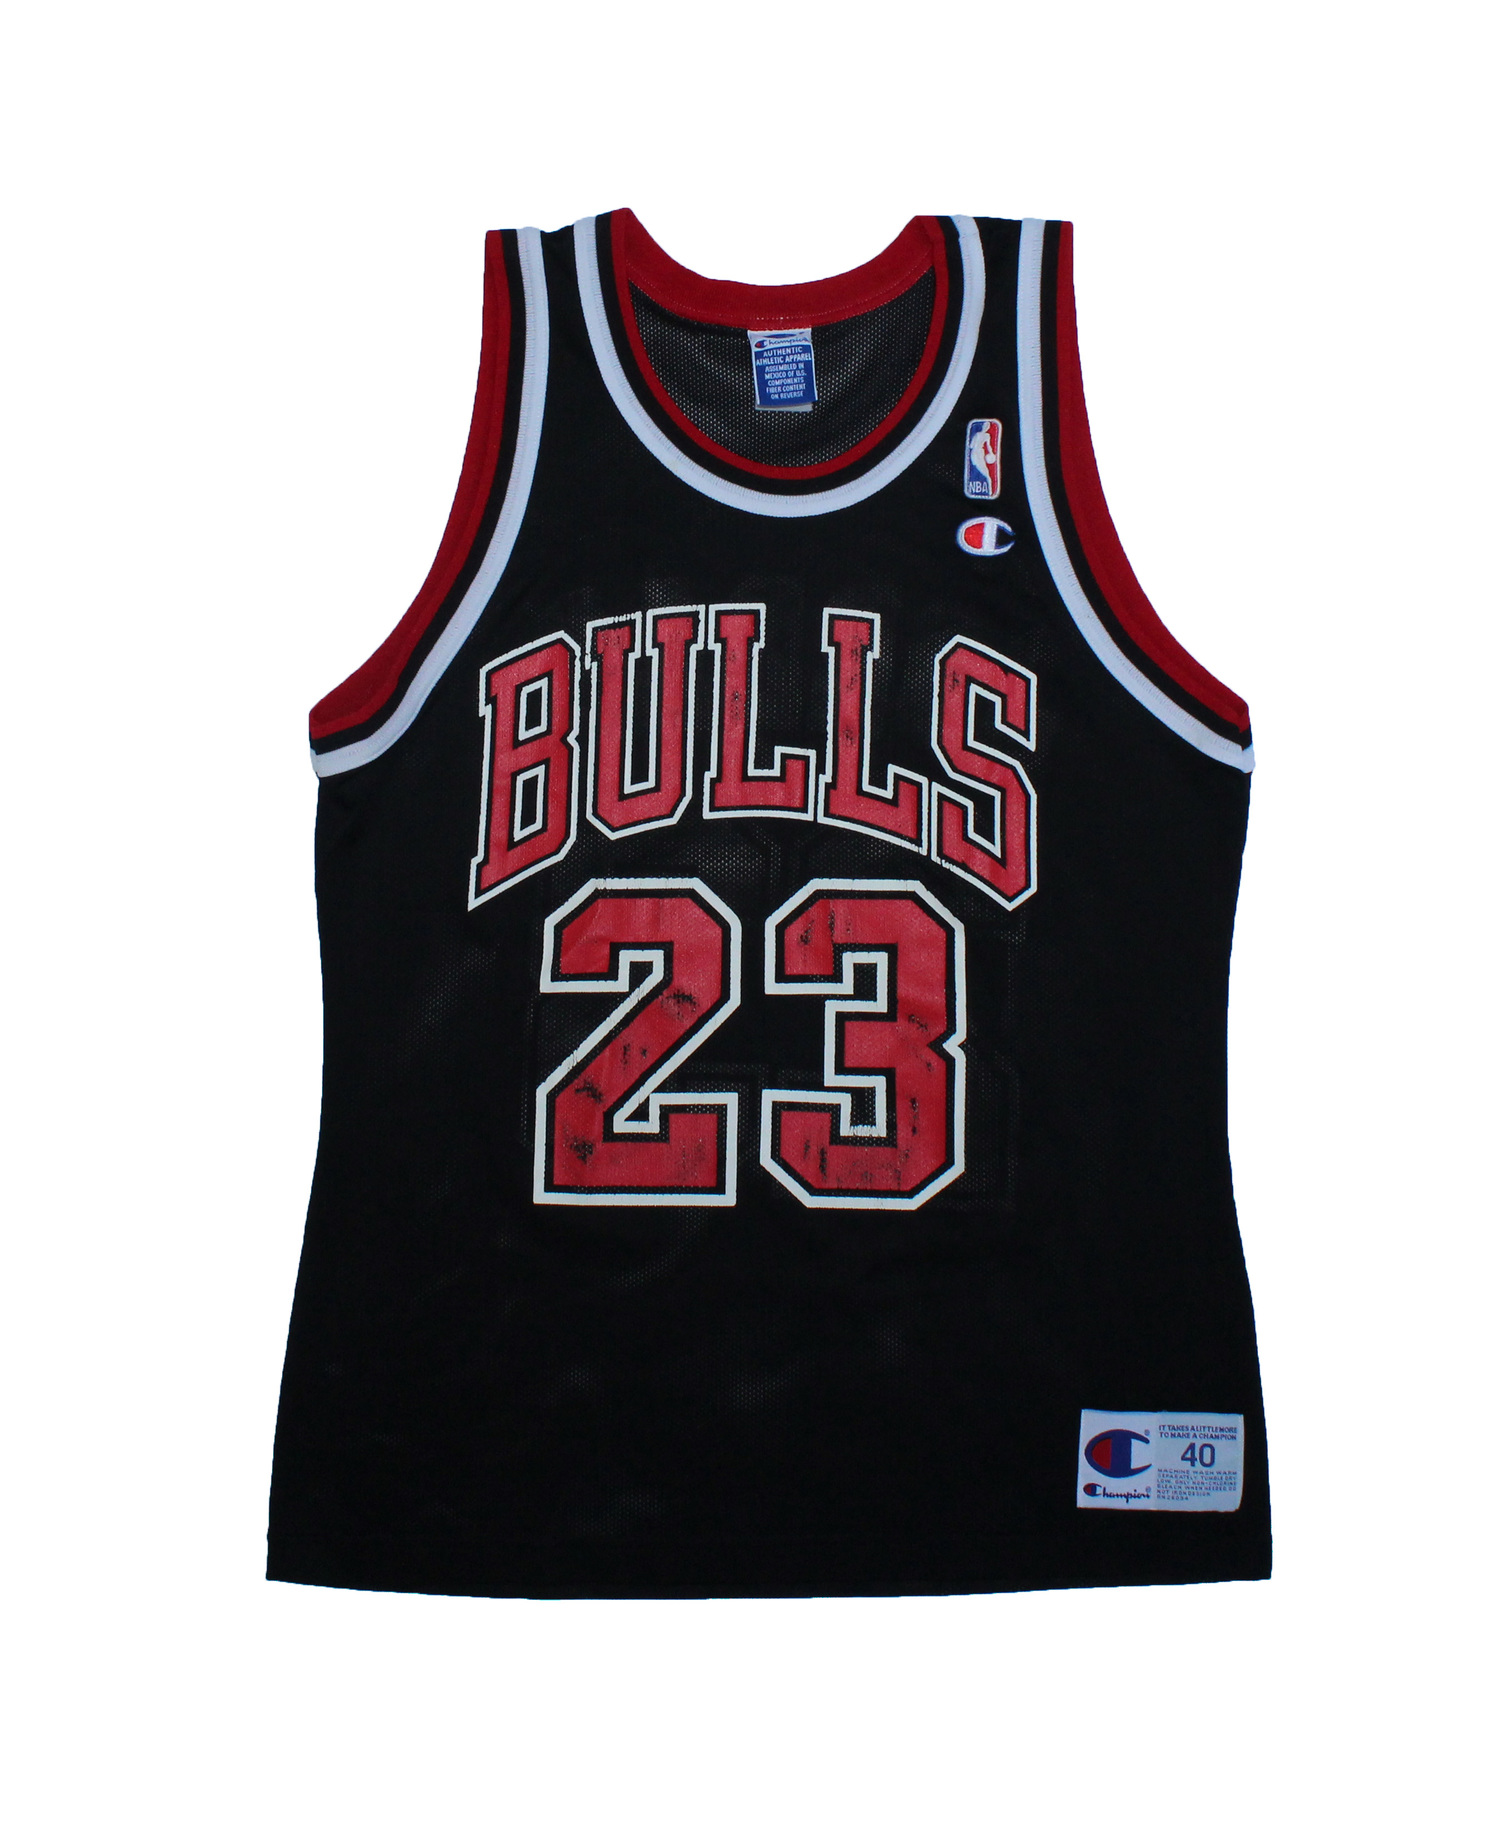 d51dcea6026 Vintage Champion Chicago Bulls Michael Jordan Black / Red Replica Jersey  (Size 40) — Roots